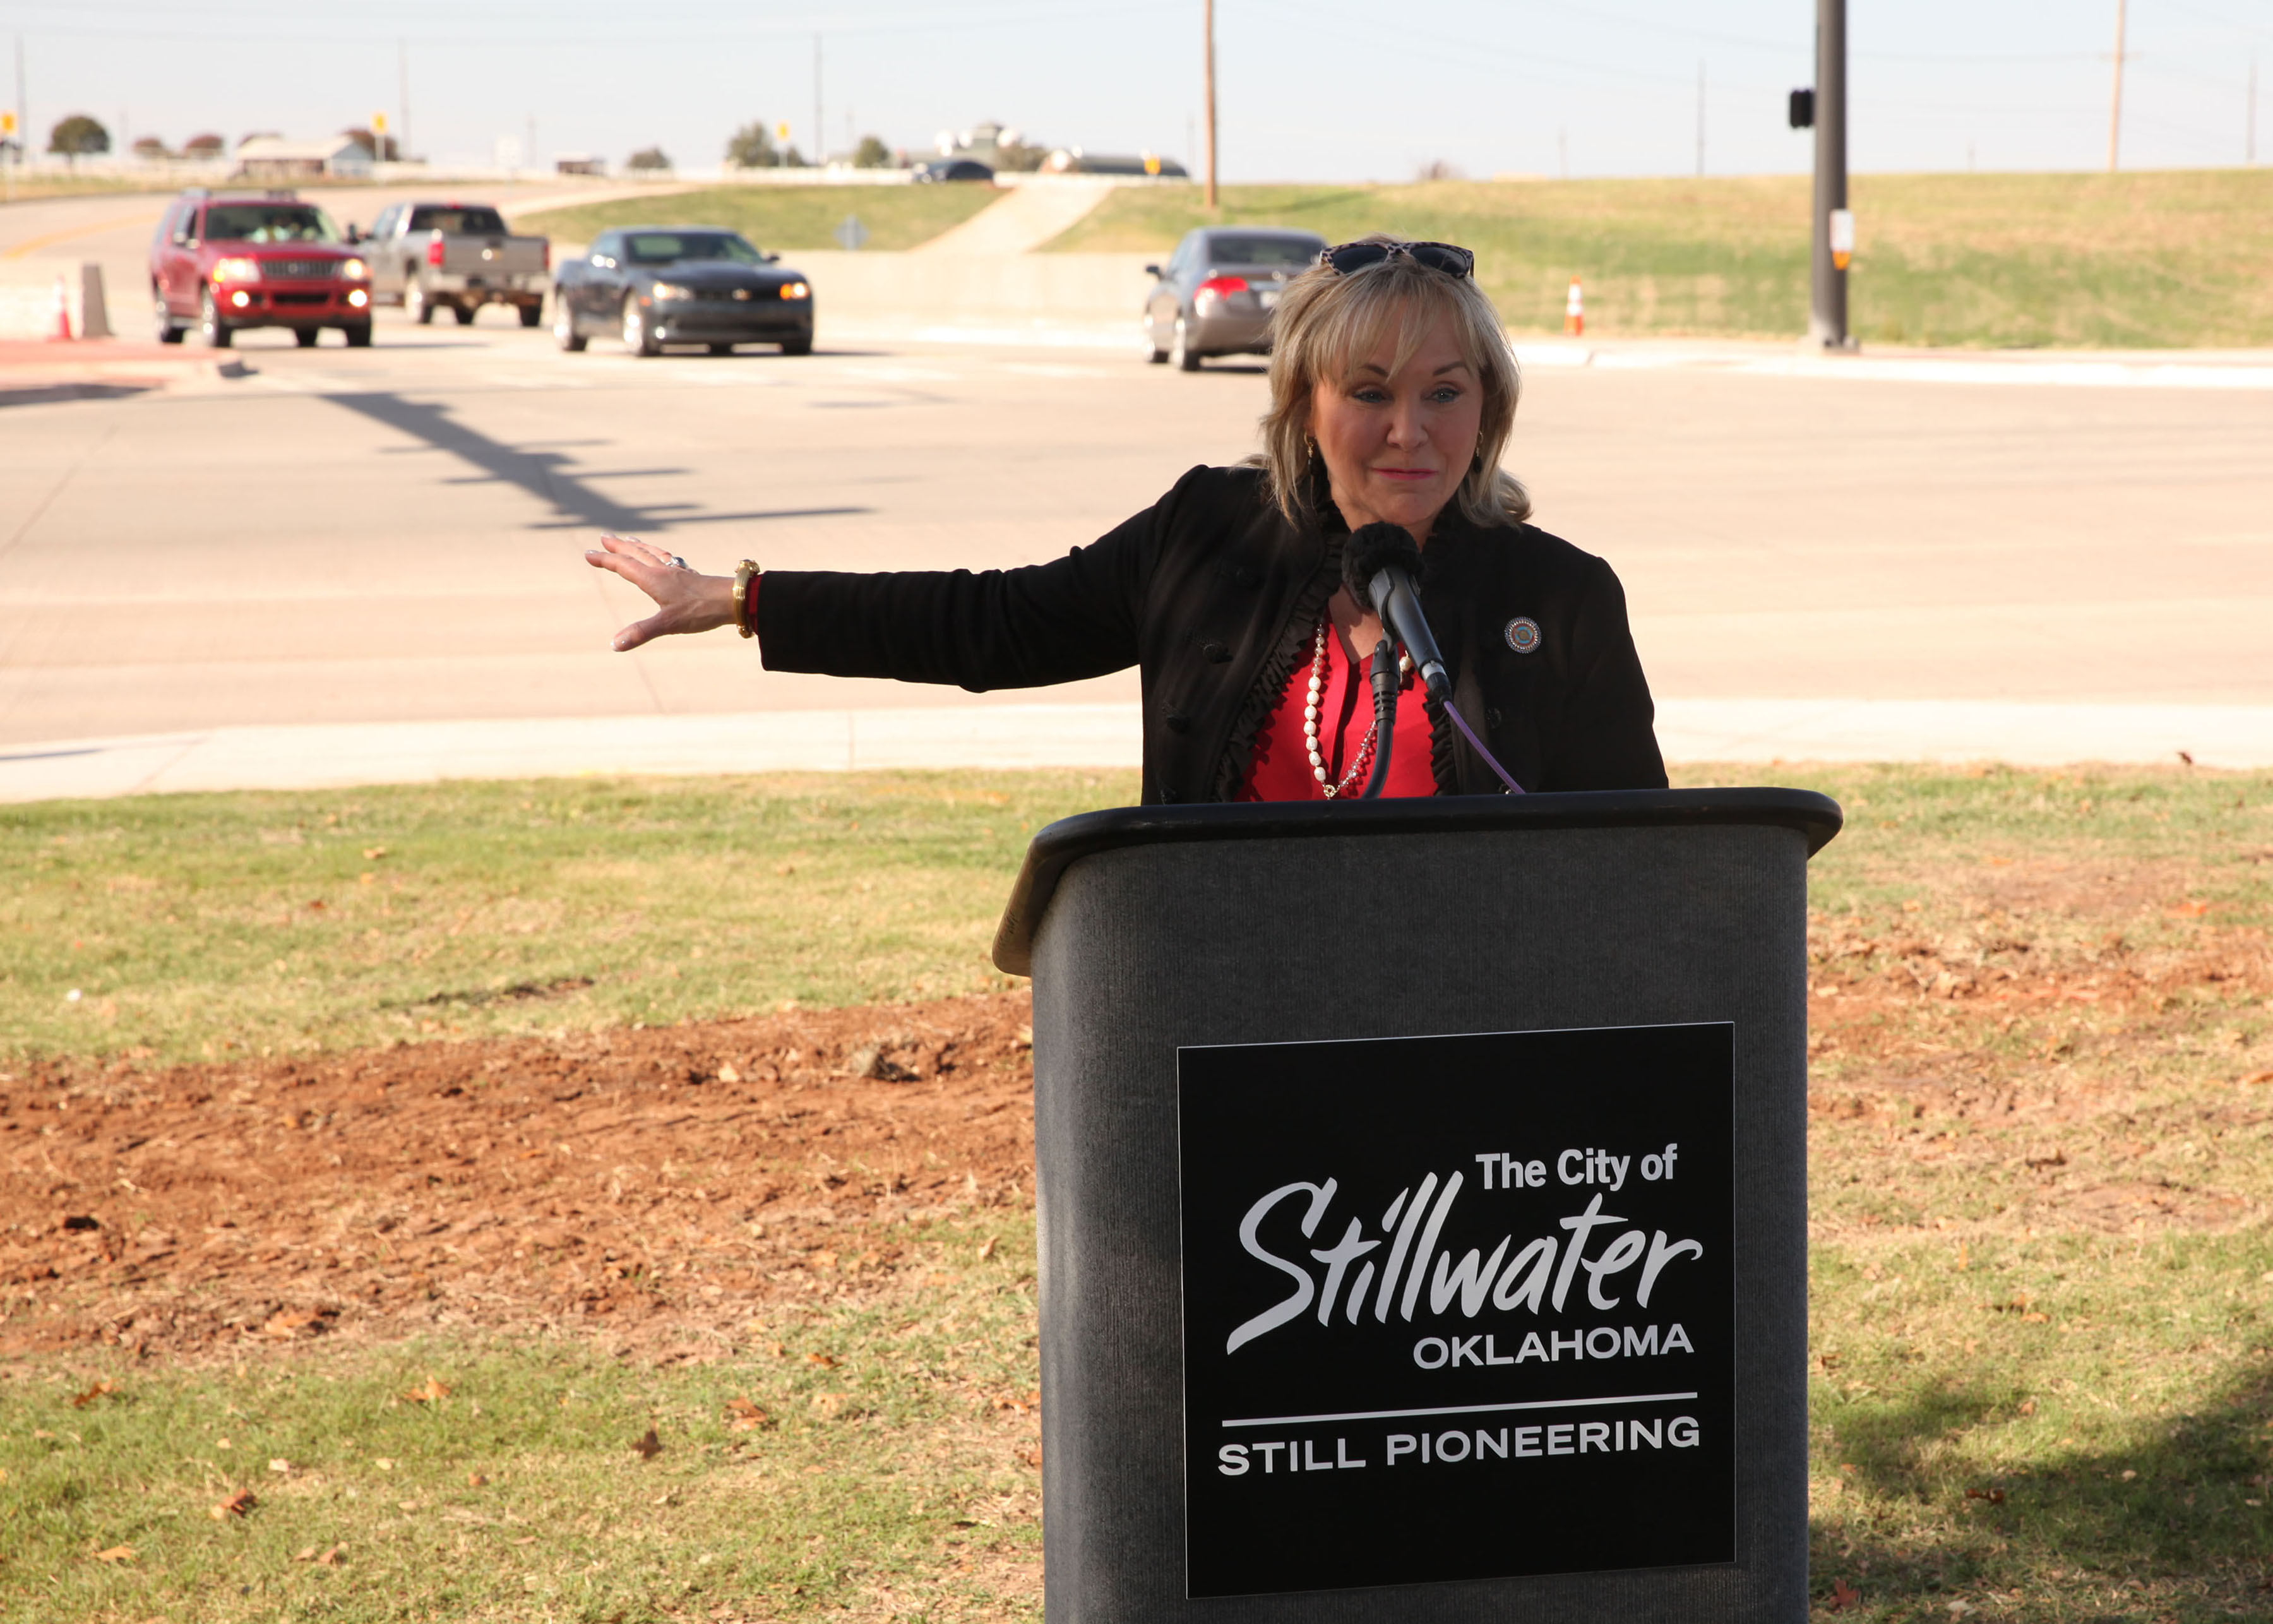 Gov. Fallin at Western Rd. intersection